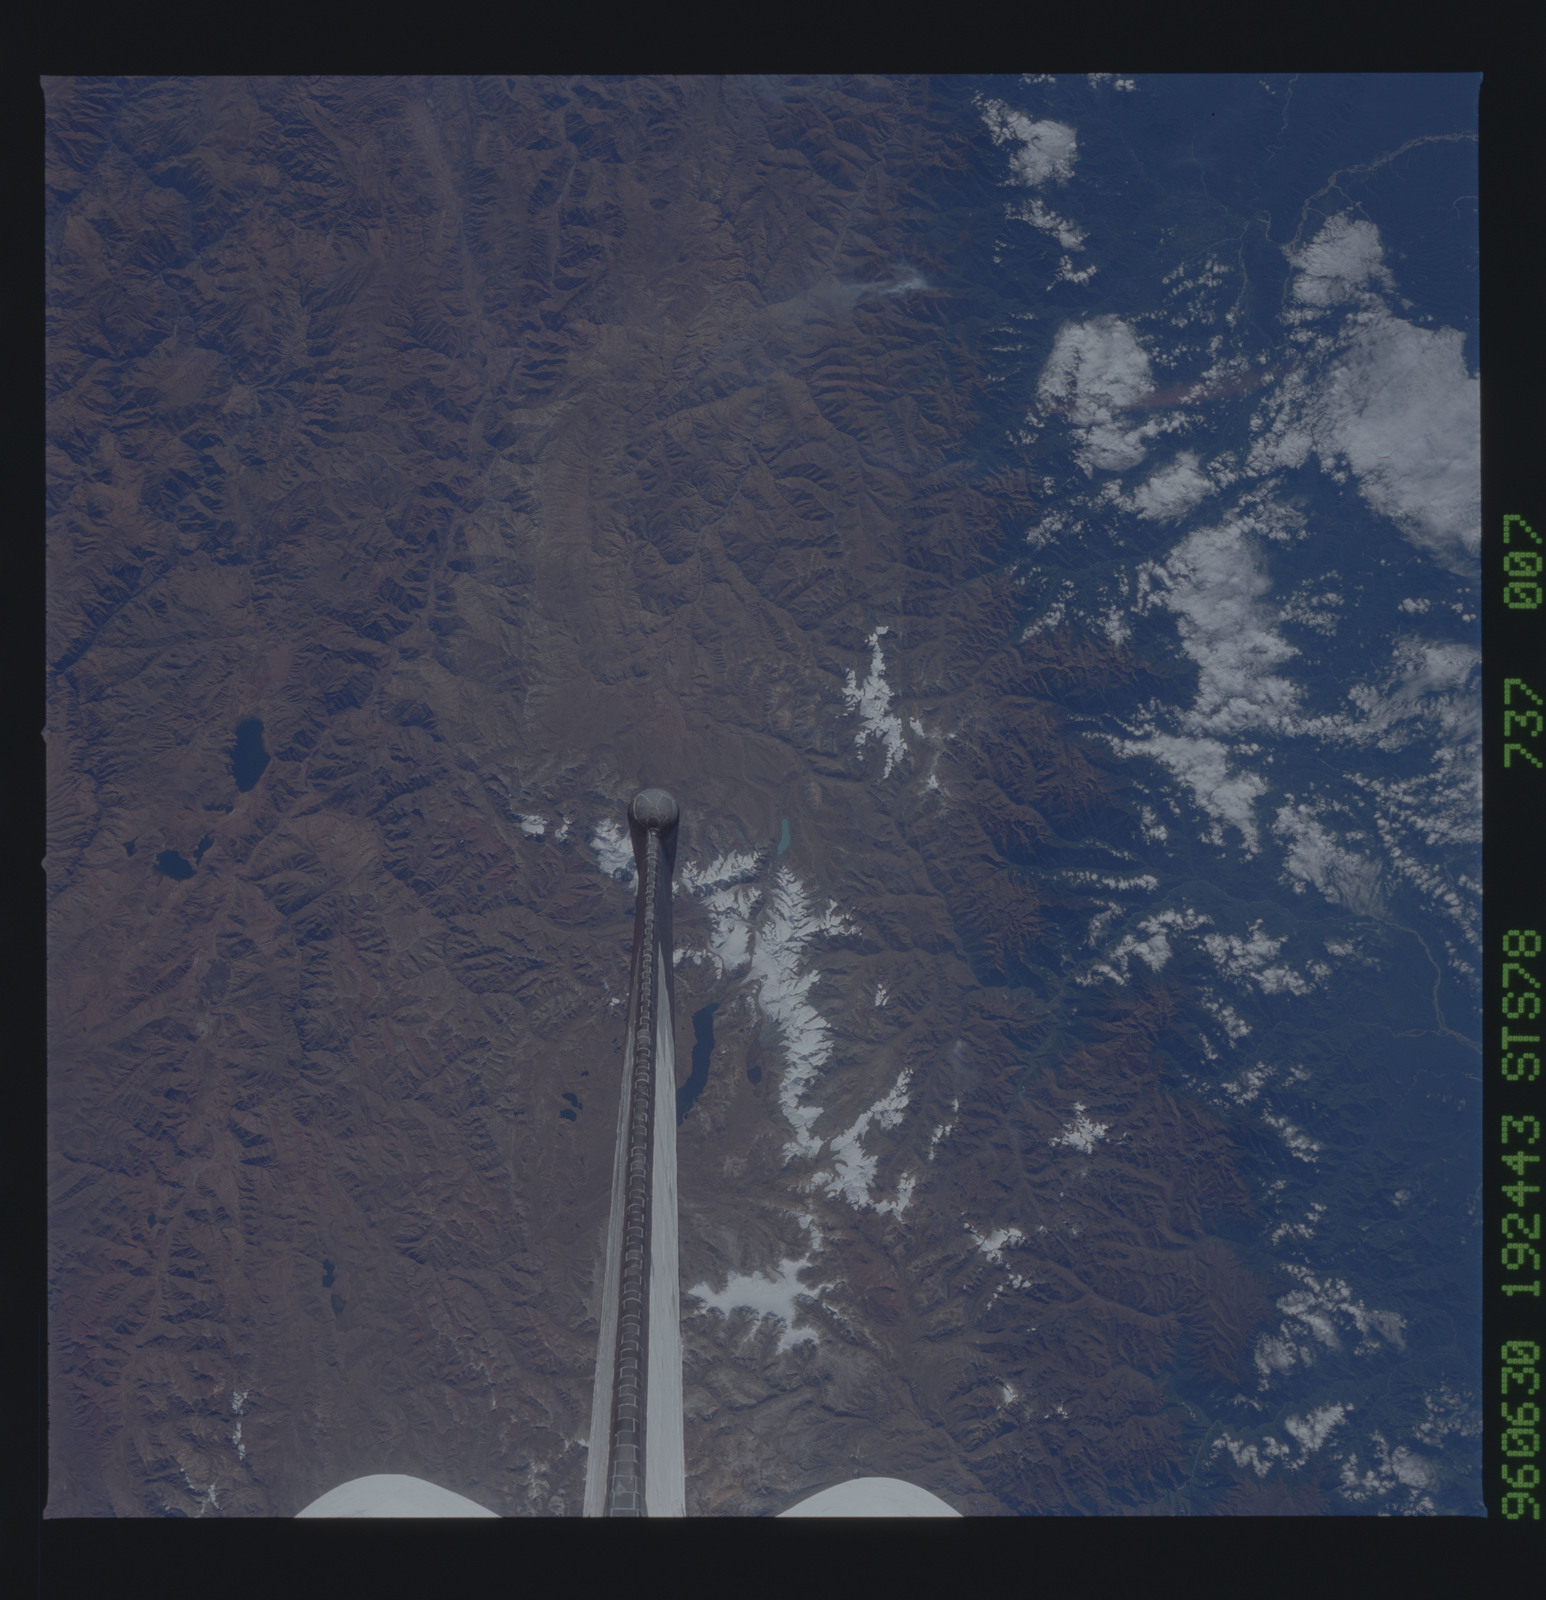 STS078-737-007 - STS-078 - Earth observations taken from Space Shuttle Columbia during STS-78 mission